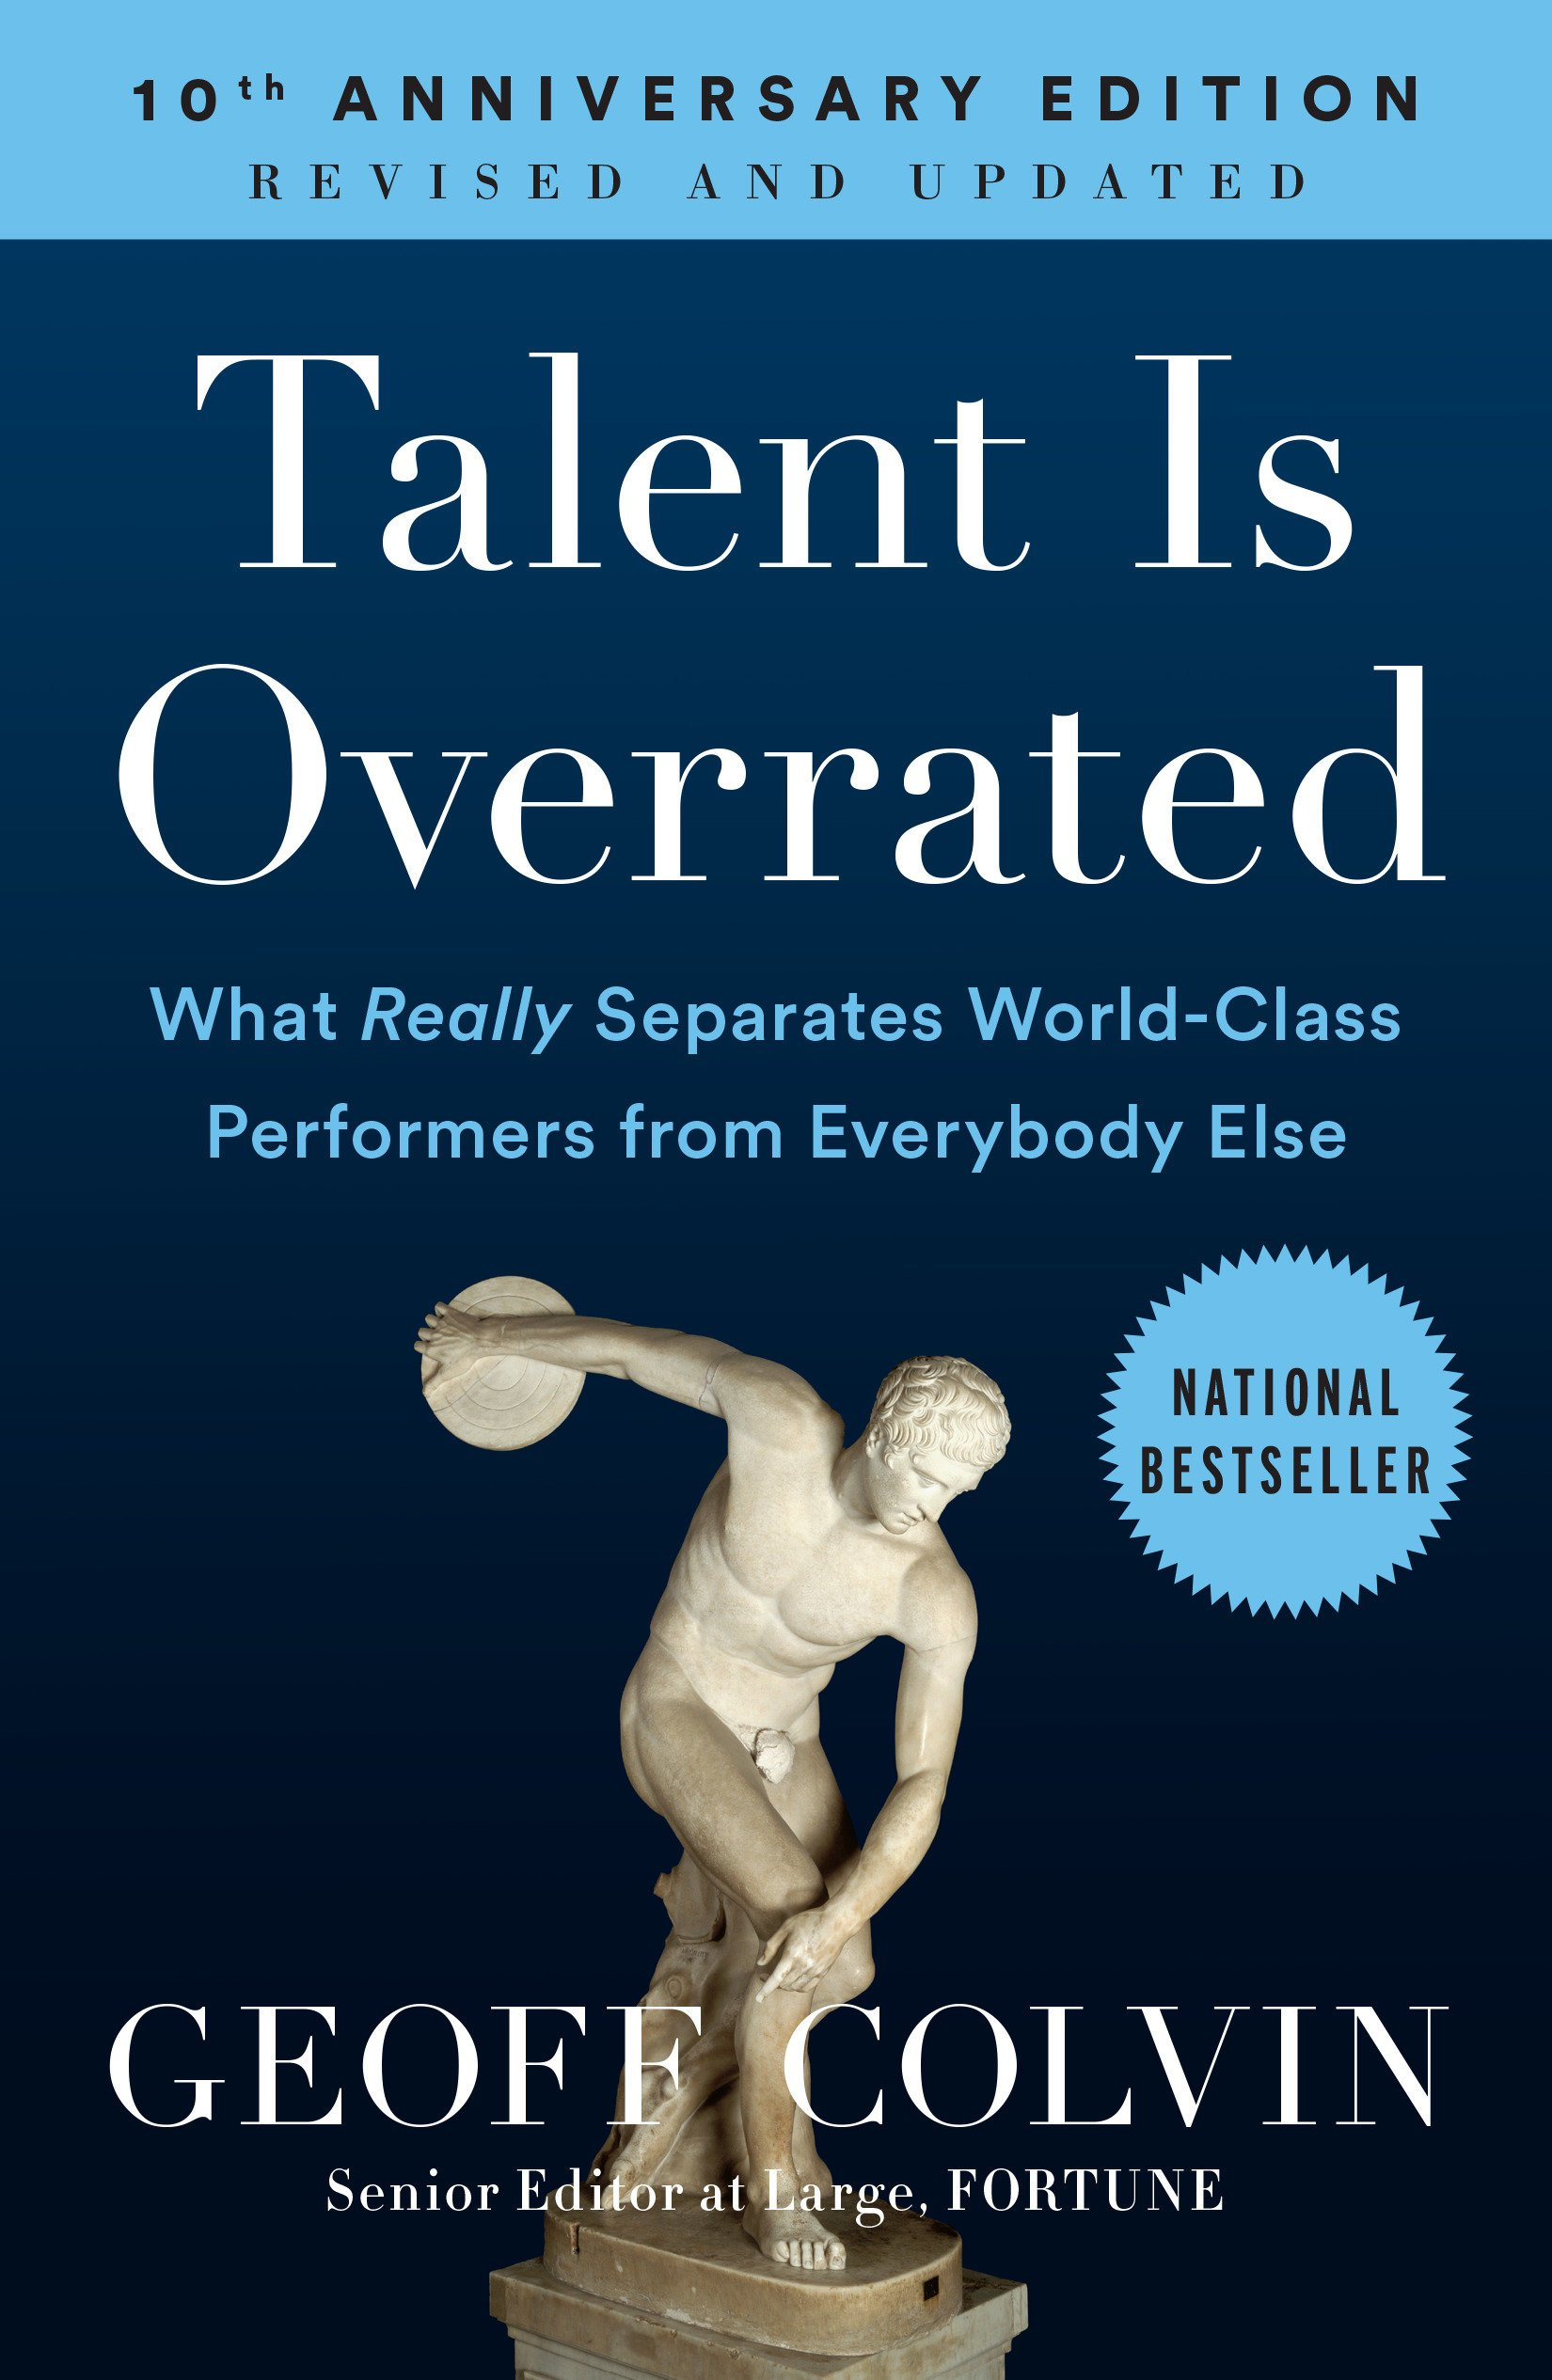 Talent is Overrated: What Really Separates World-Class Performers